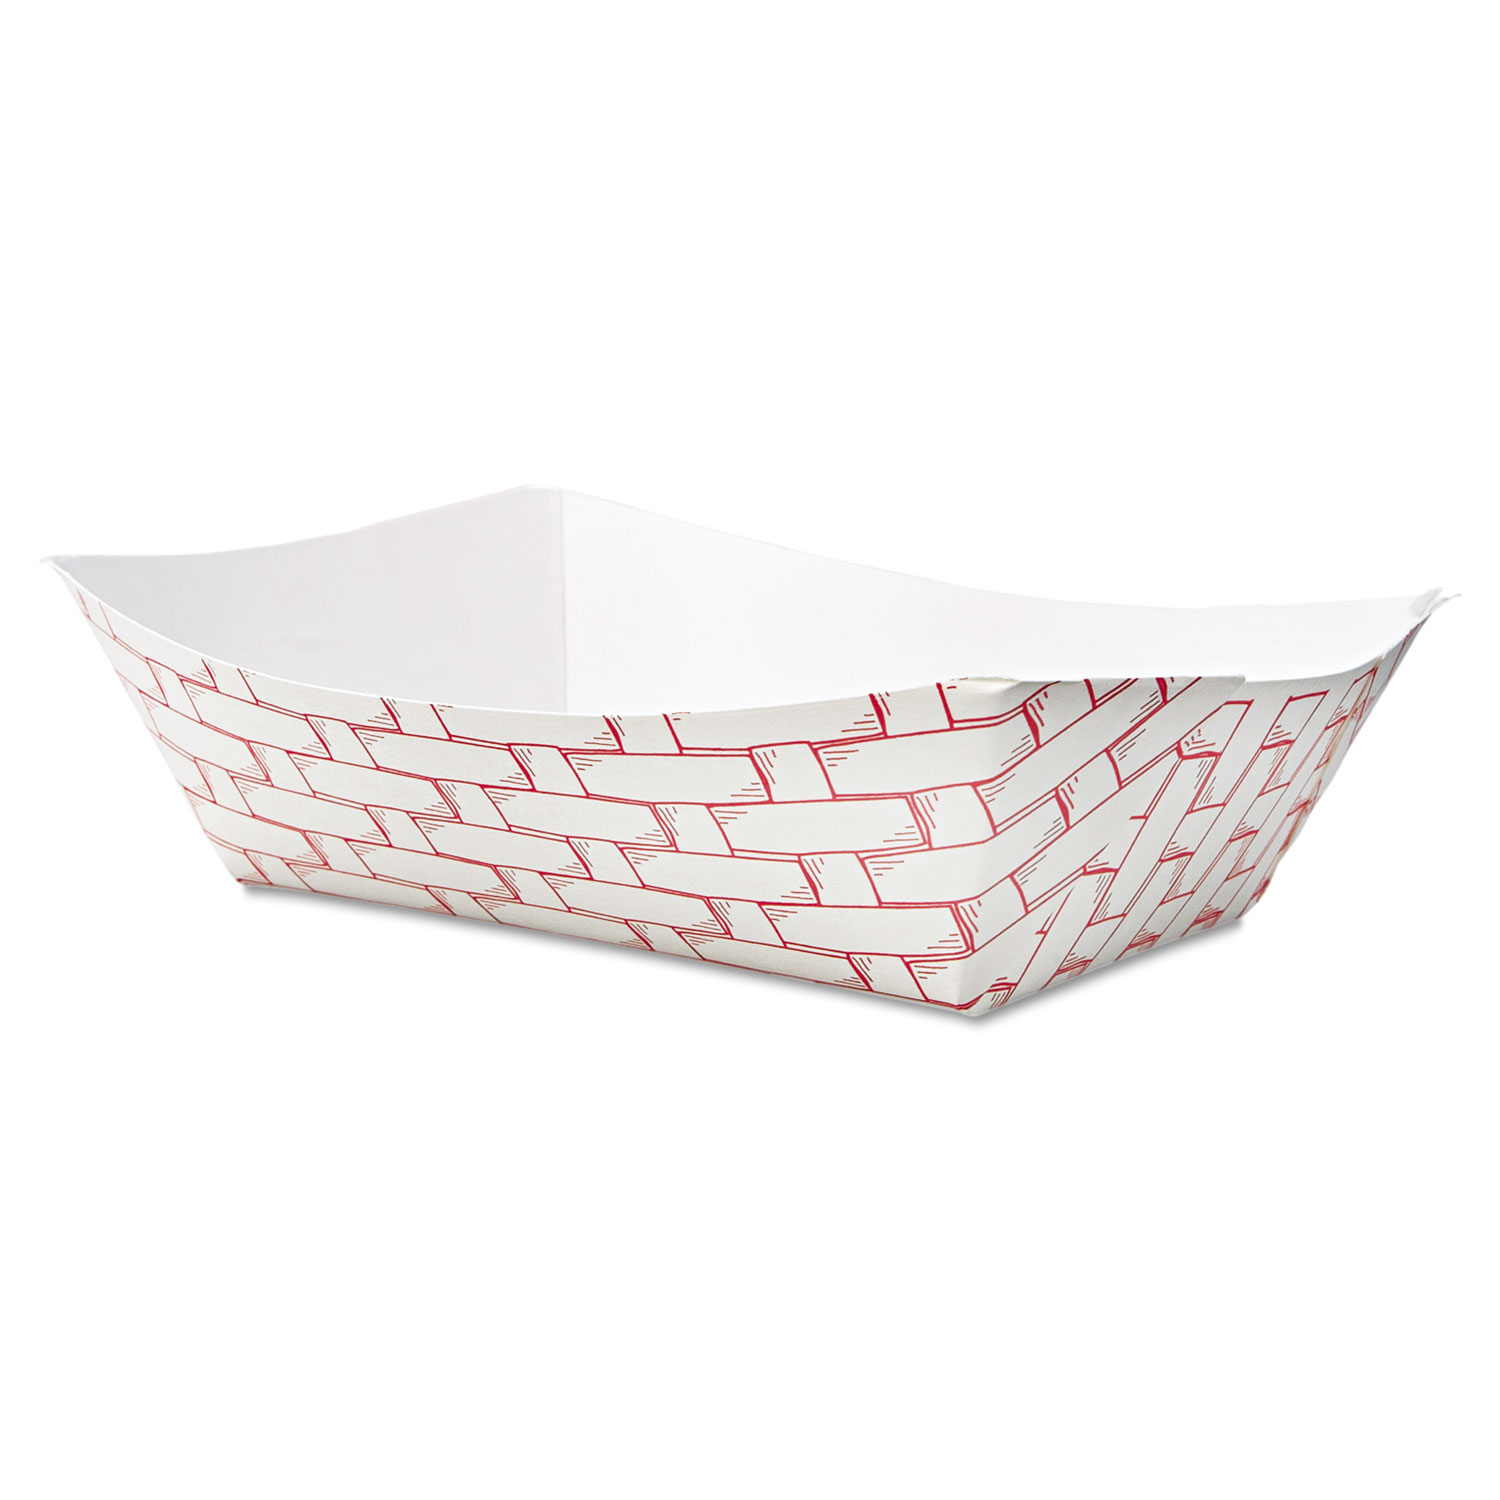 Paper Food Baskets, 3lb Capacity, Red/White, 500/Carton